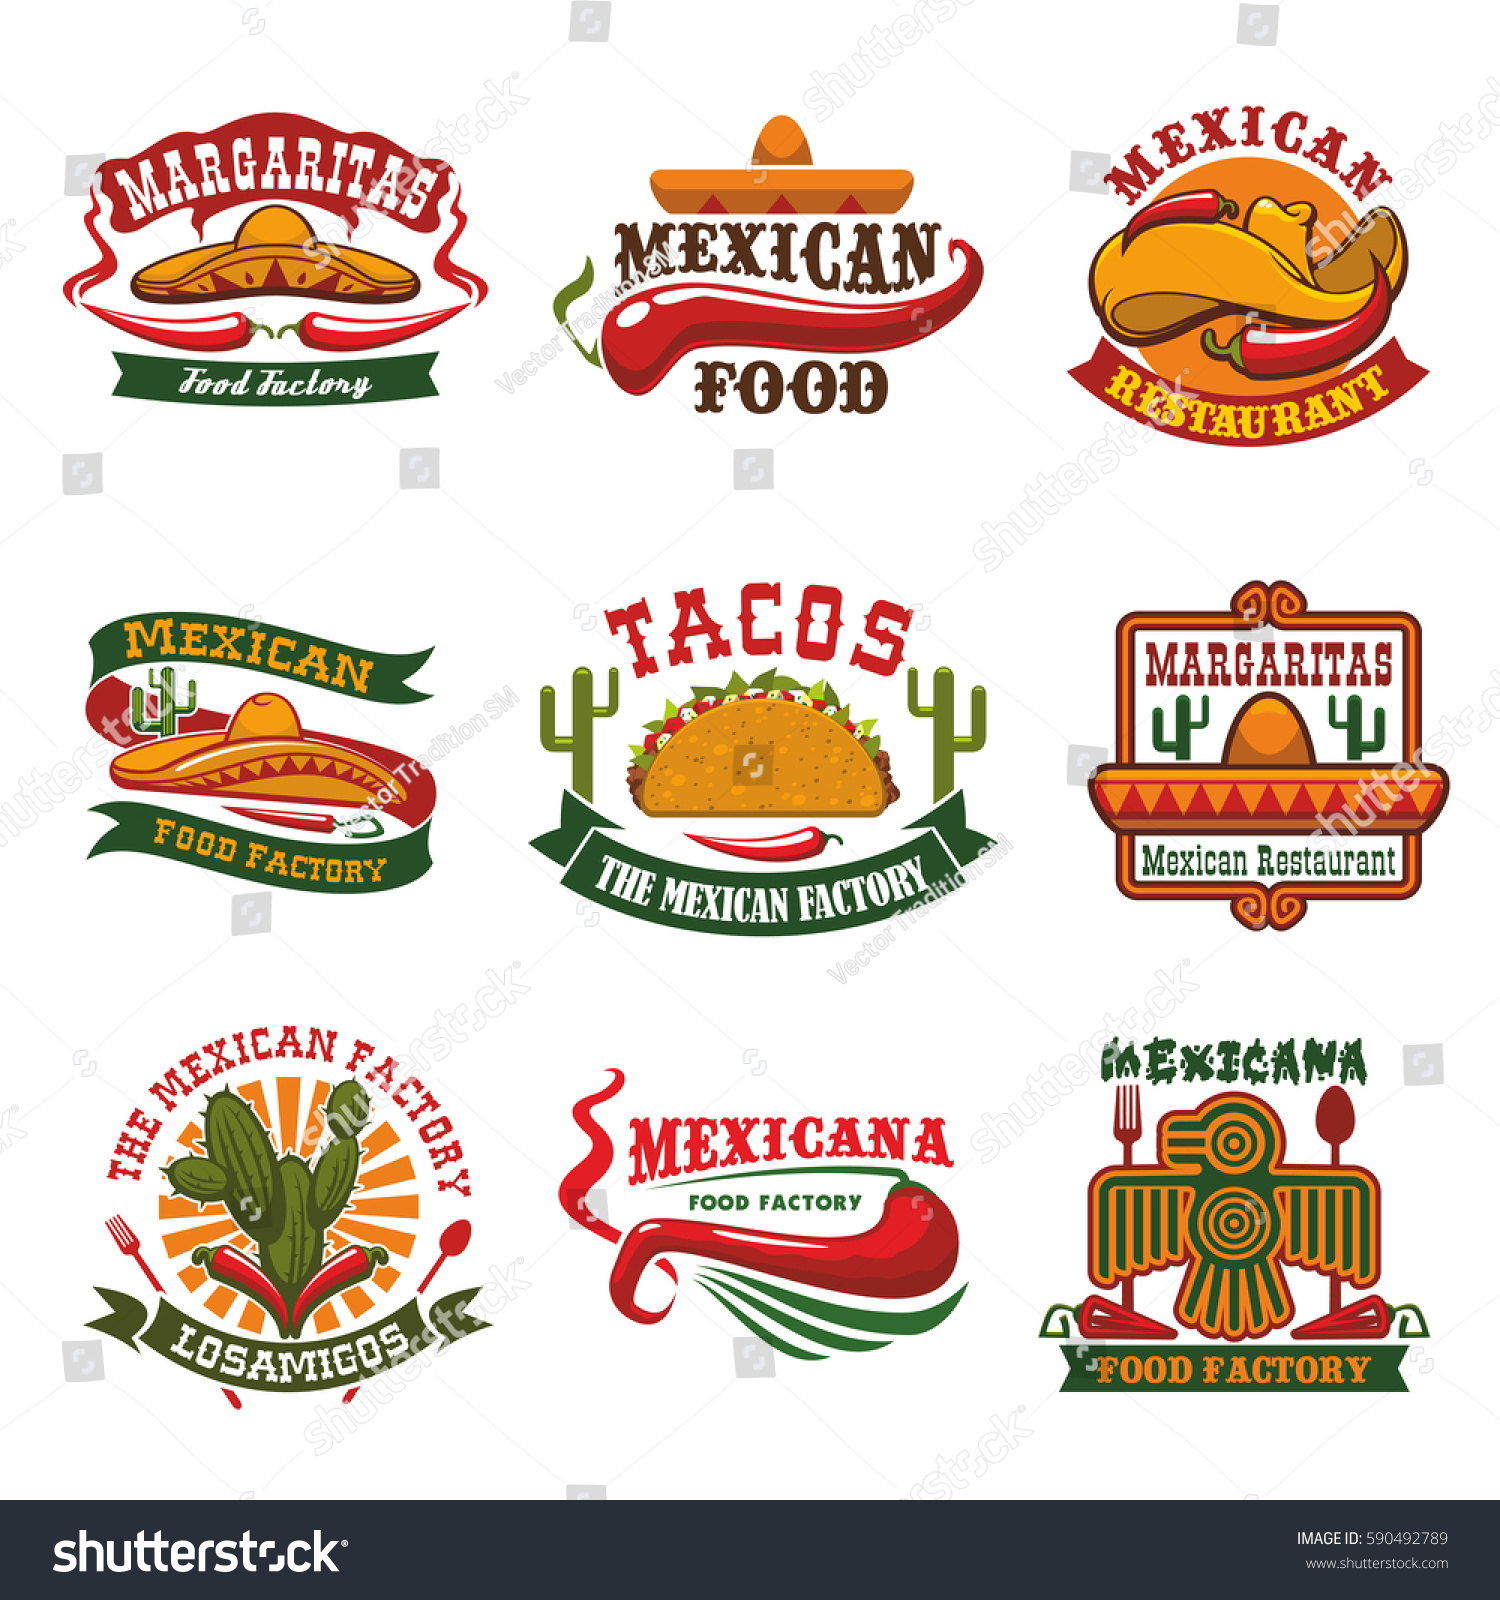 Mexican Cuisine Restaurant Fast Food Cafe Stock Vector Royalty Free